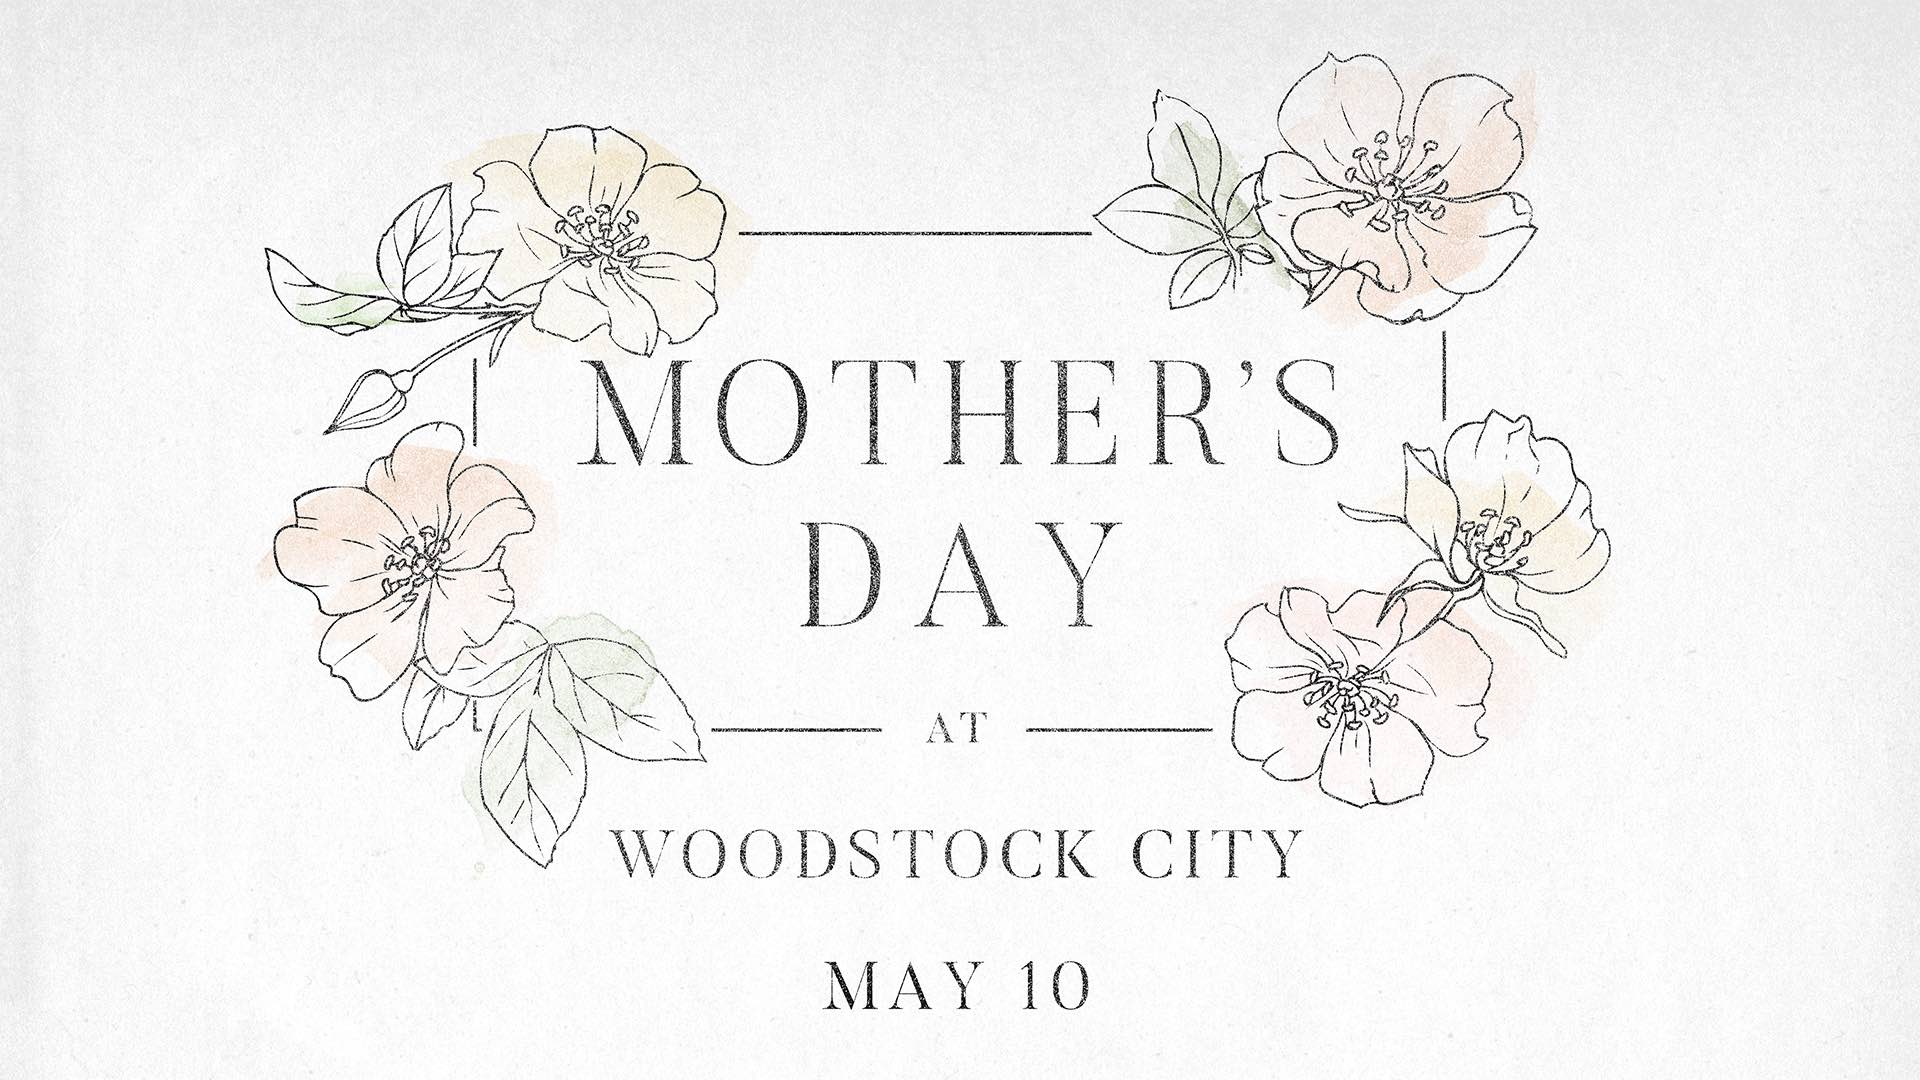 Mother's Day at Woodstock City